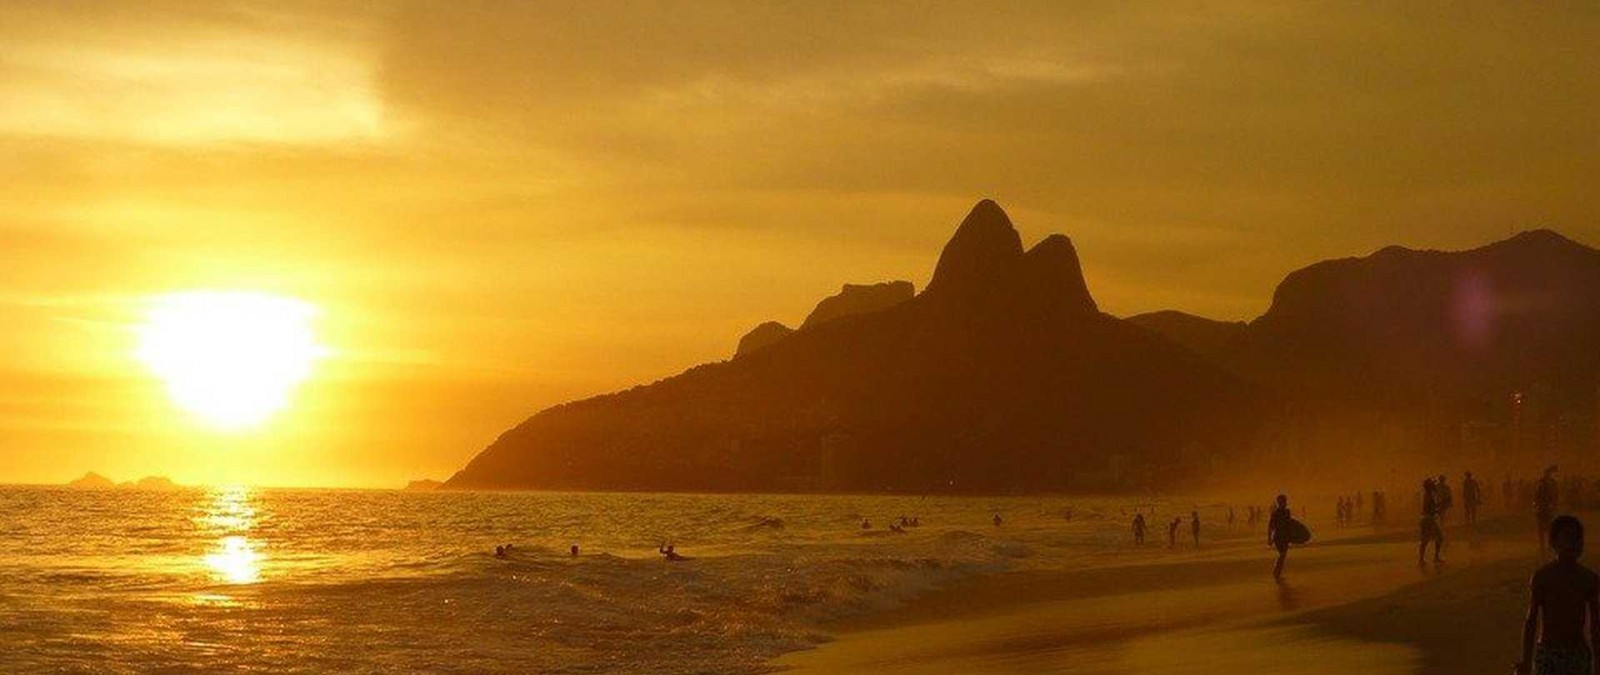 ipanema-beach-99388_960_720-jpg-1920x810_default